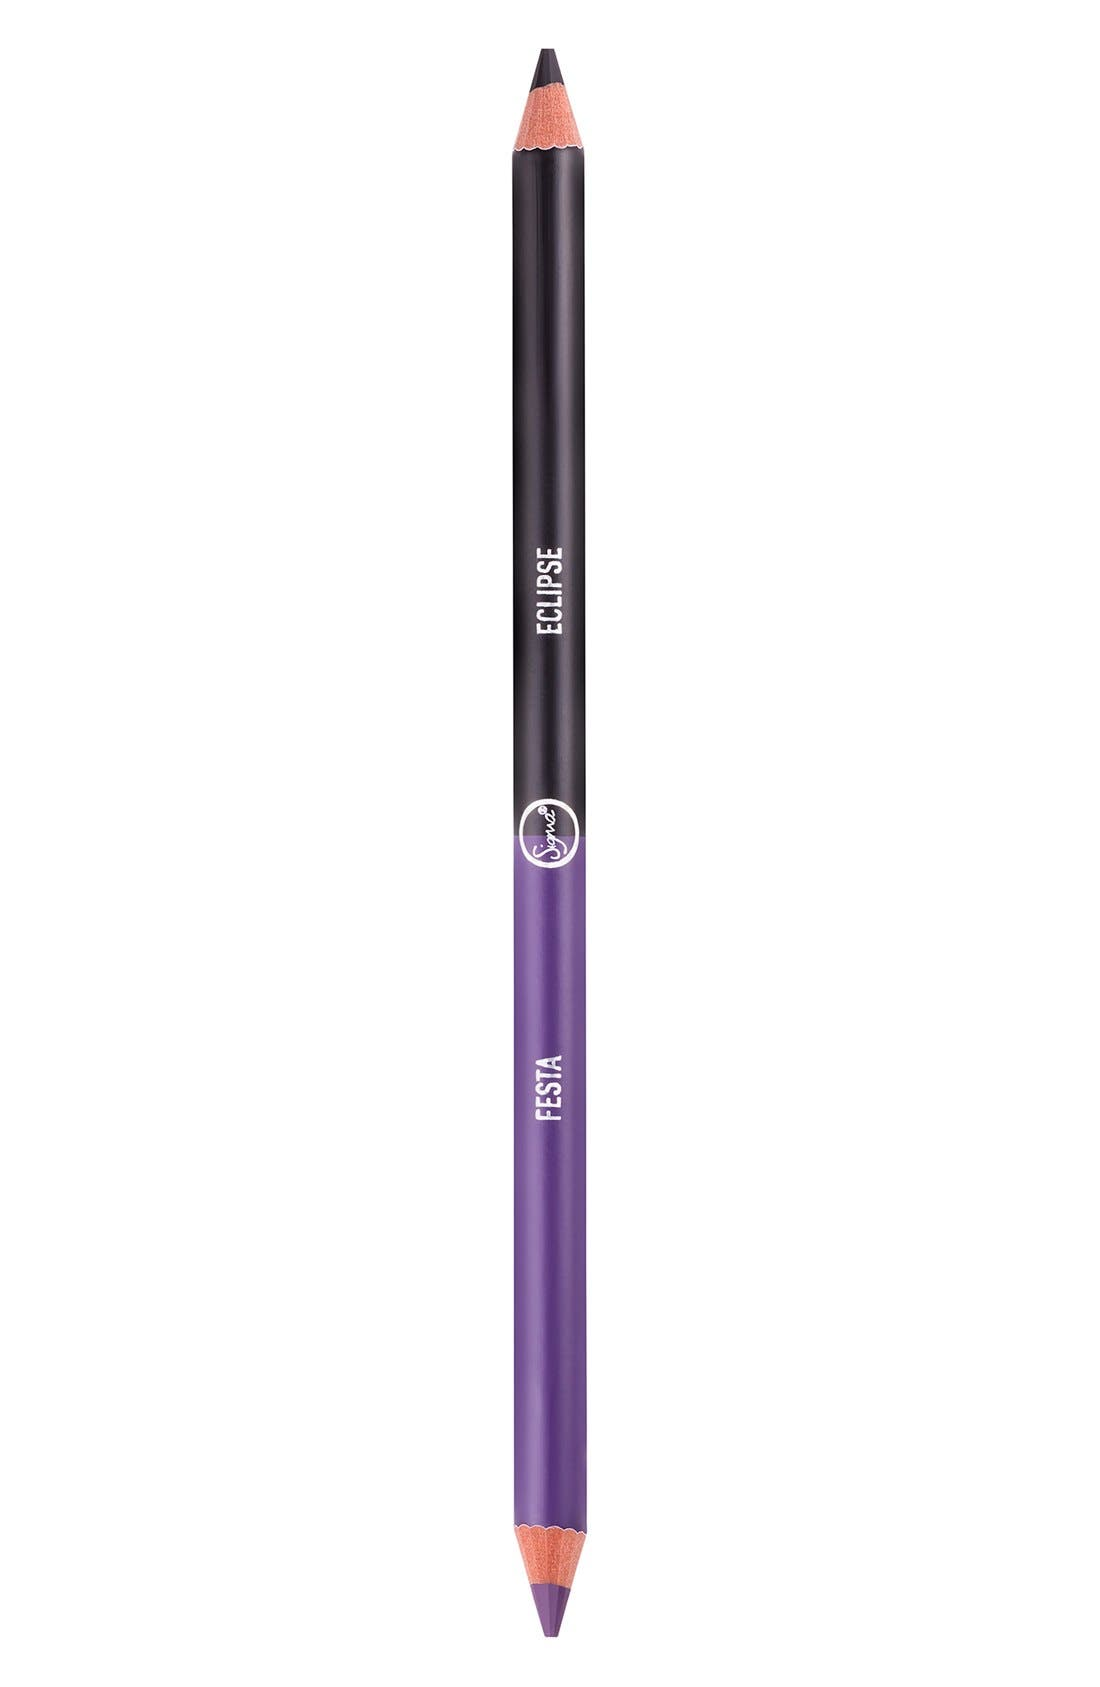 Sigma Beauty 'Eclipse/Festa' Dual-Ended Eyeliner